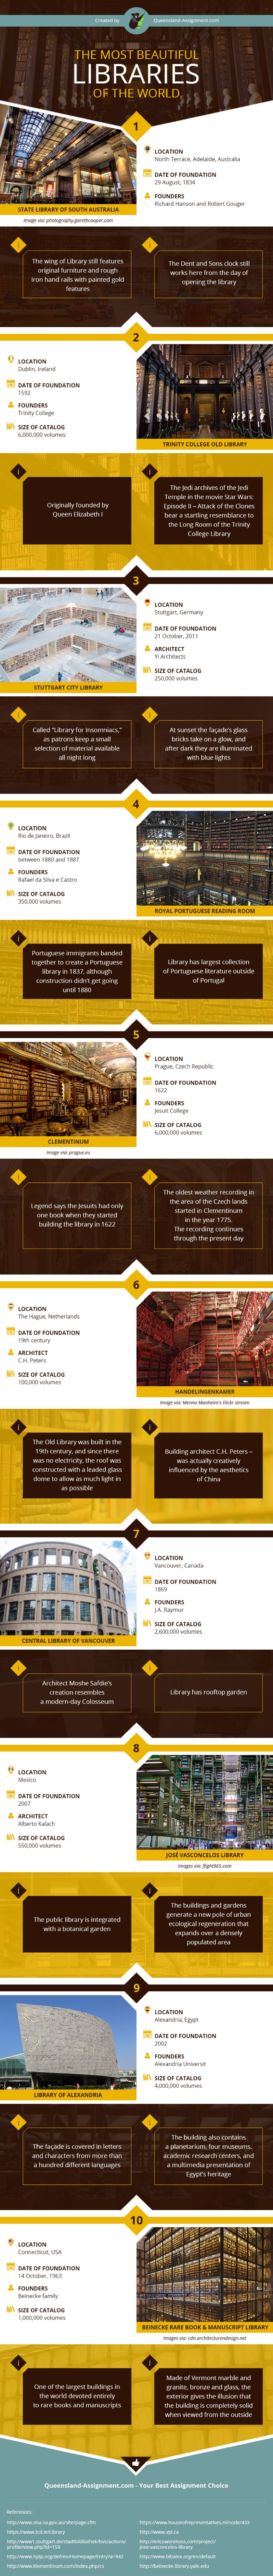 The most beautiful libraries in the world #infographic